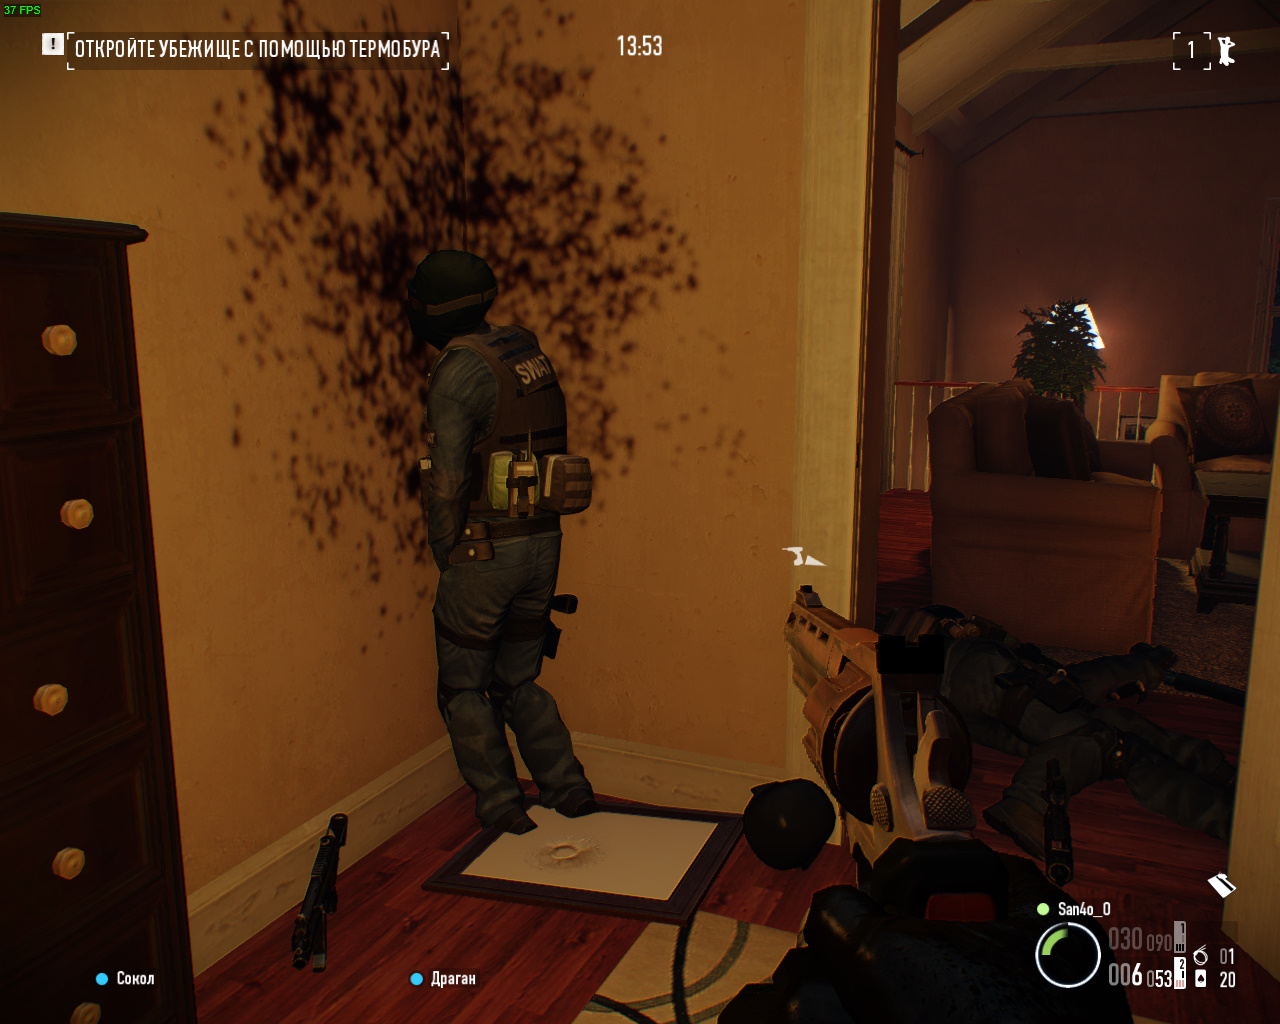 payday2_win32_release 2016-04-26 20-58-43-609.jpg - Payday 2